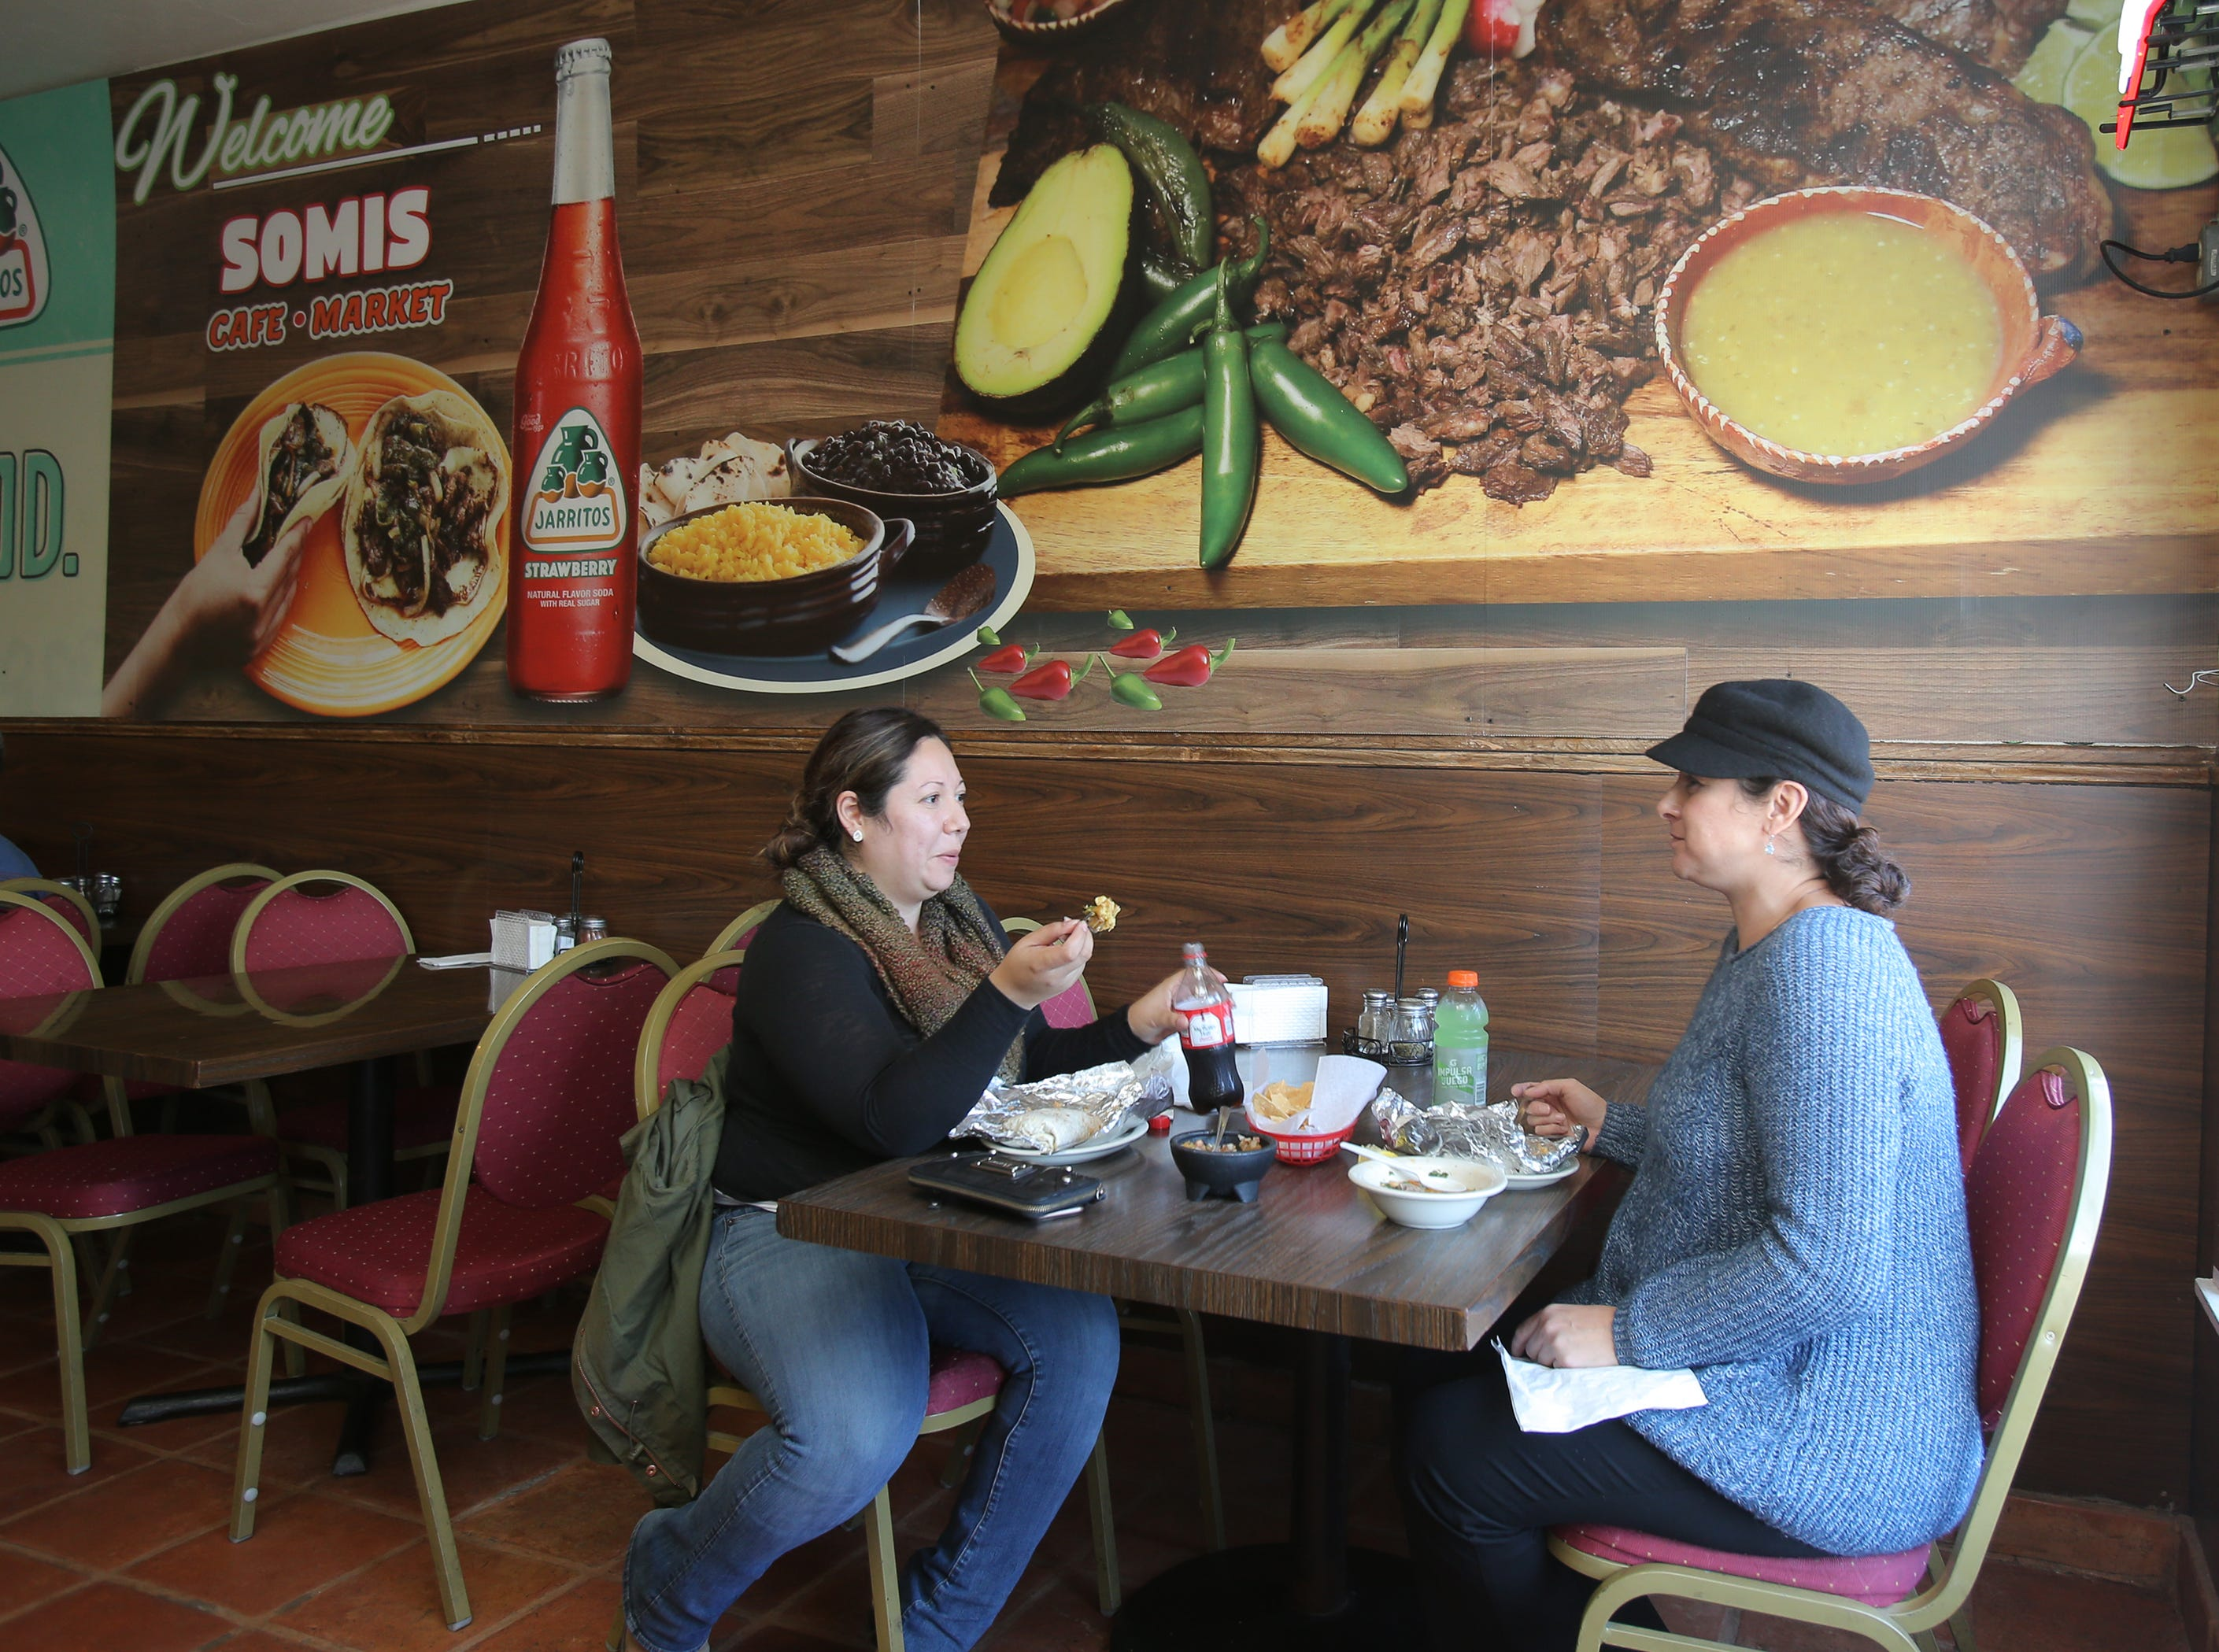 Letty Hernandez, left, of Oxnard and Ava Gonzales, of Camarillo, eat lunch at the Somis Café and Market.